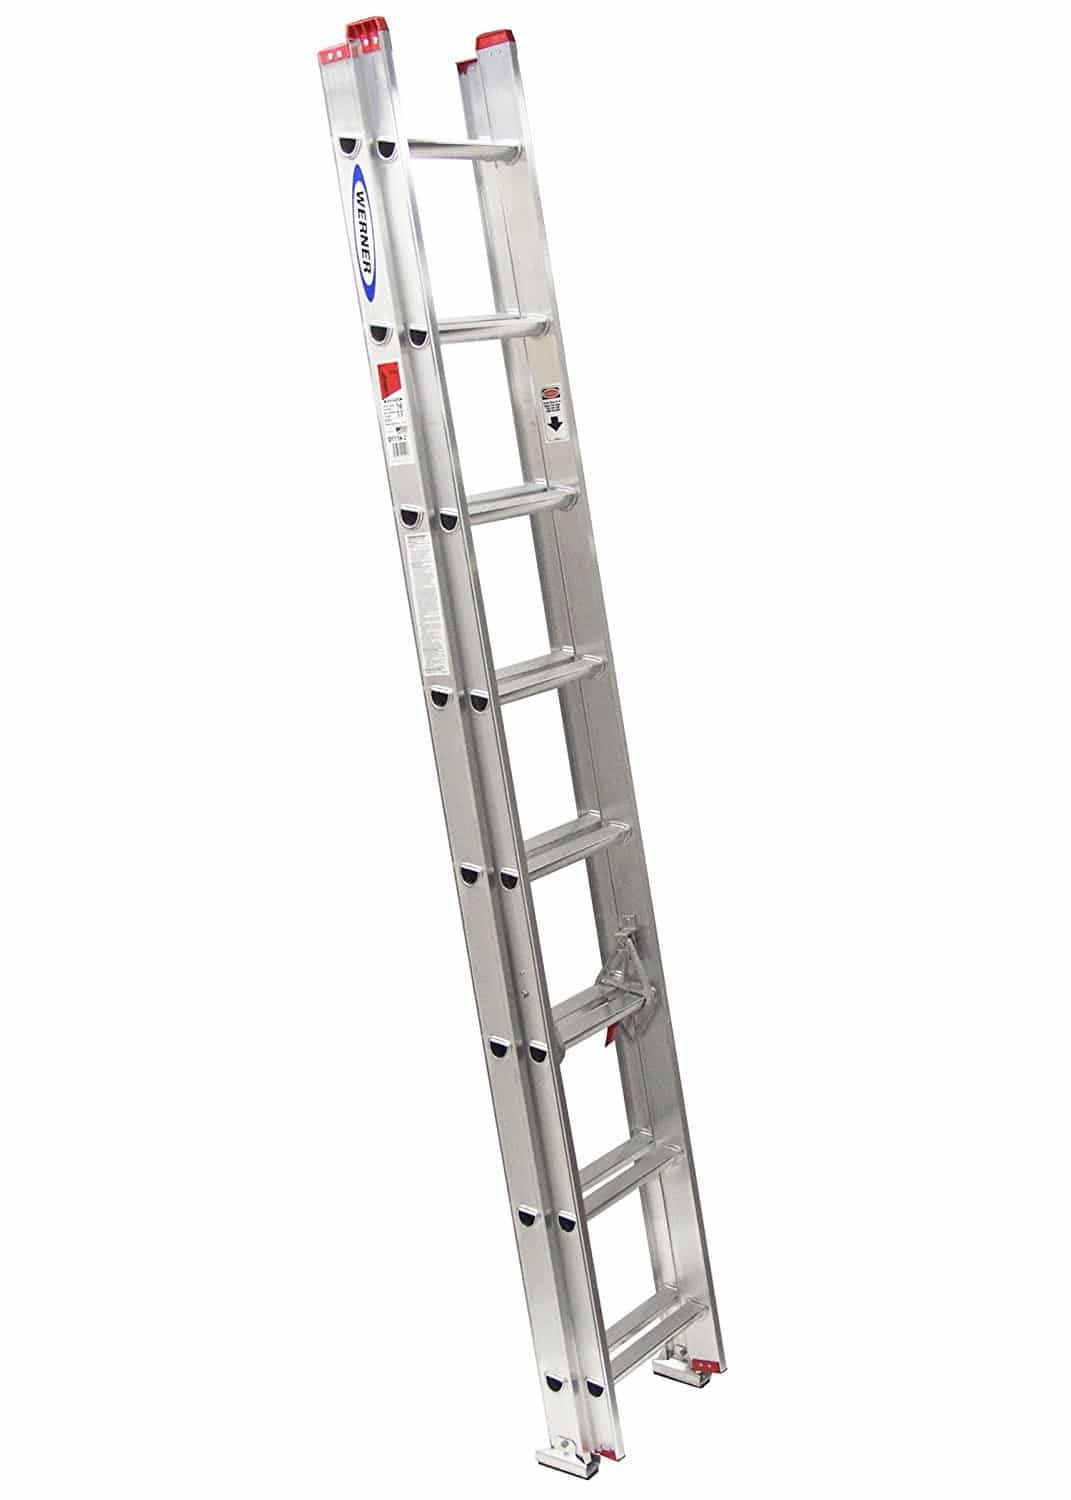 Top 10 Best Extension Ladders In 2020 Reviews 5productreviews Ladder Aluminum Extension Ladder Ladder Price